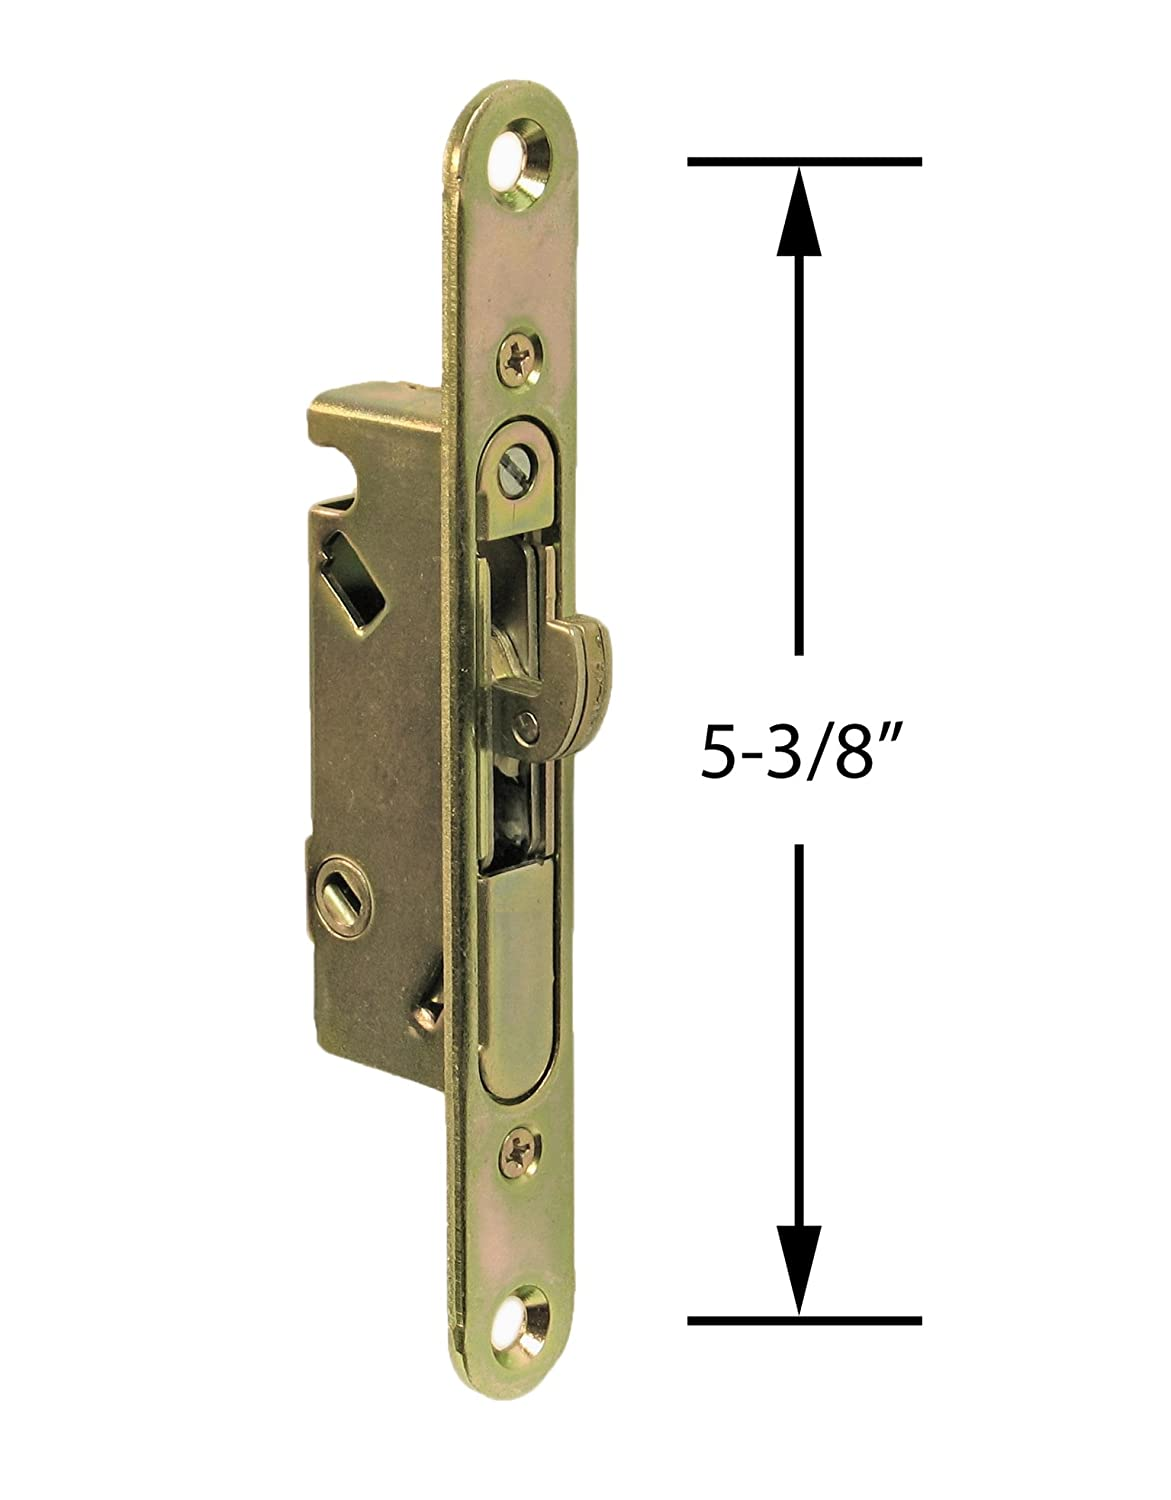 "FPL #3-45-S Sliding Glass Door Replacement Mortise Lock with Adapter Plate,  5-3/8"" Screw Holes, 45 Degree Keyway- YZD Plating"